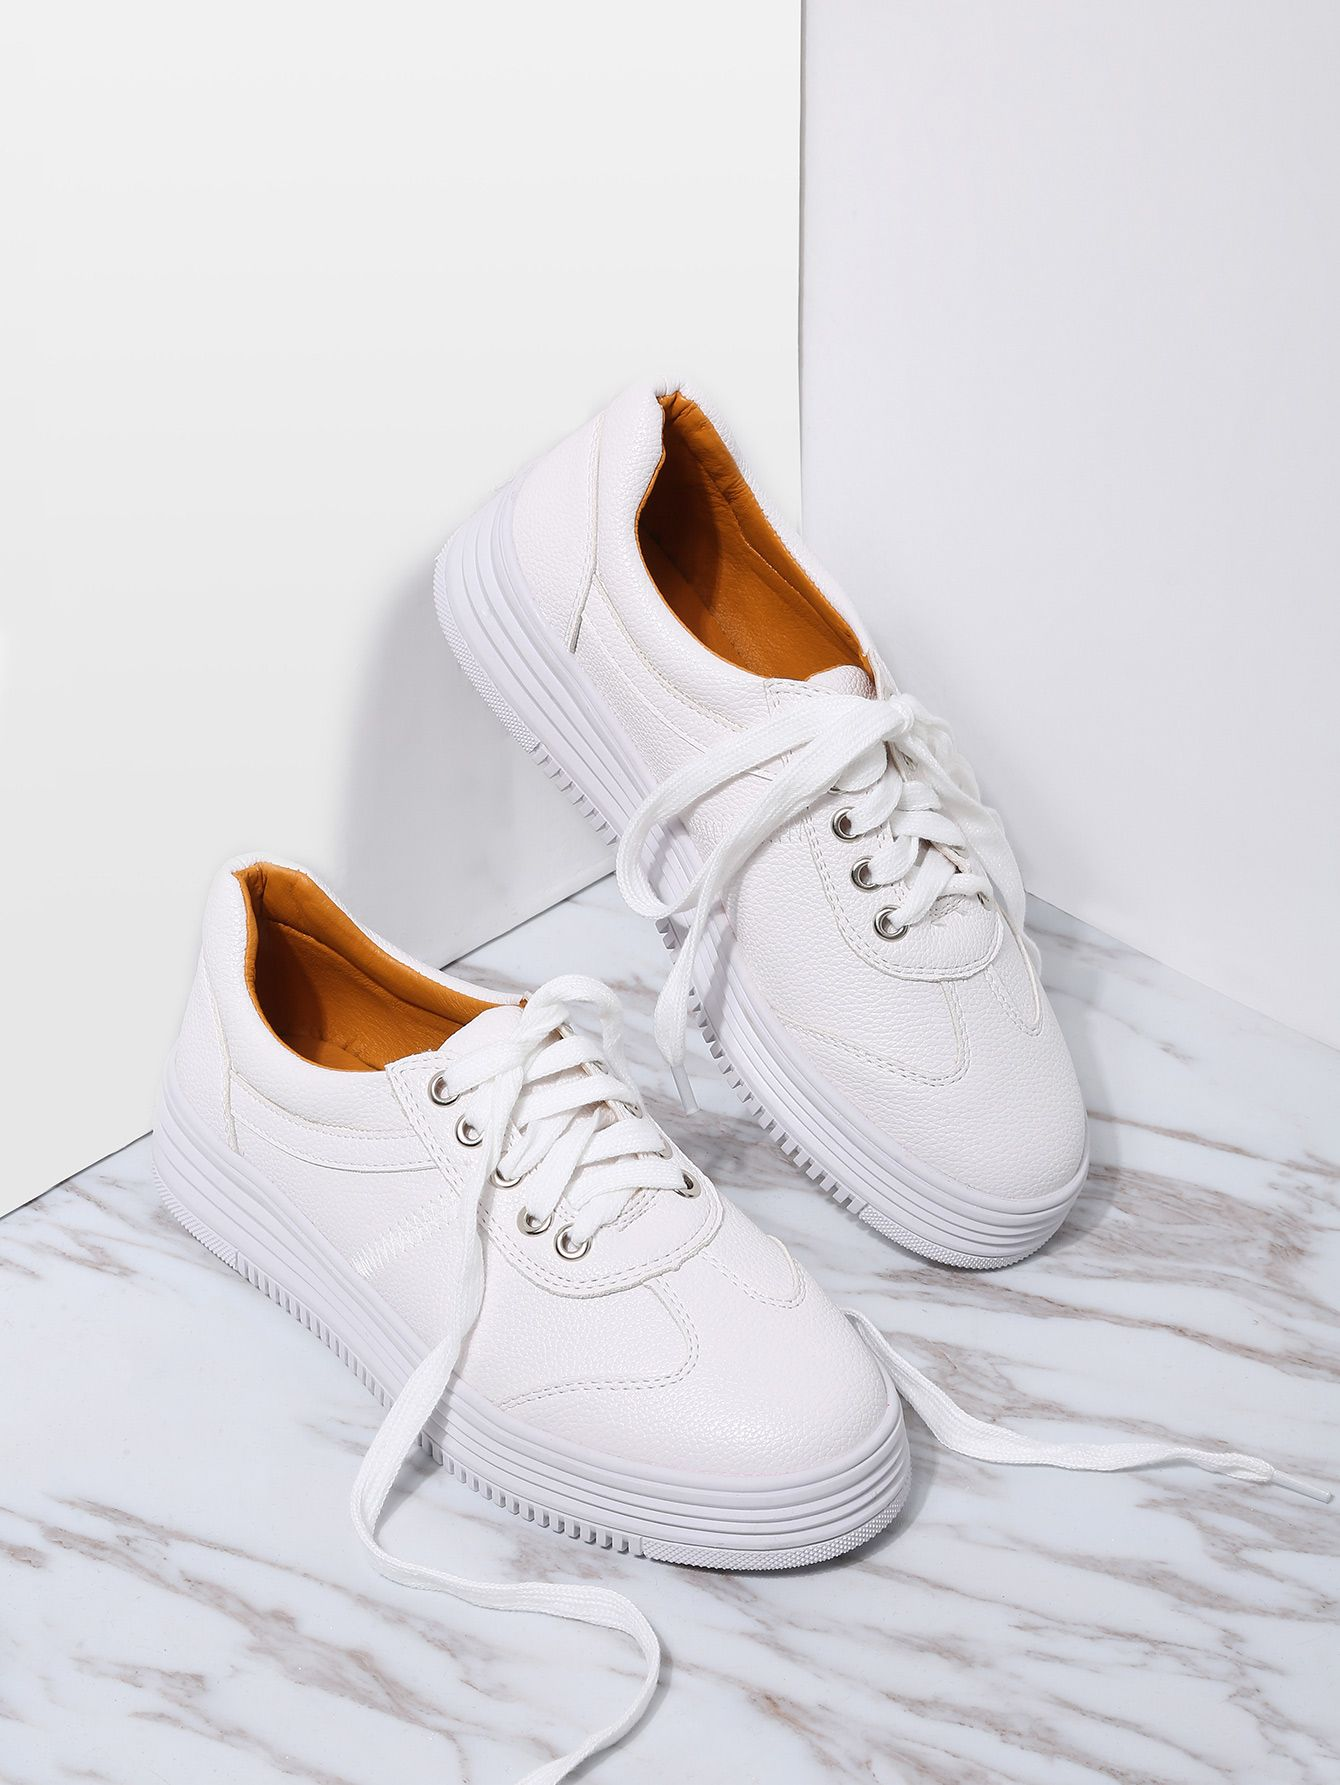 09063d146f Shop White PU Rubber Sole Low Top Sneakers online. SheIn offers White PU  Rubber Sole Low Top Sneakers & more to fit your fashionable needs.